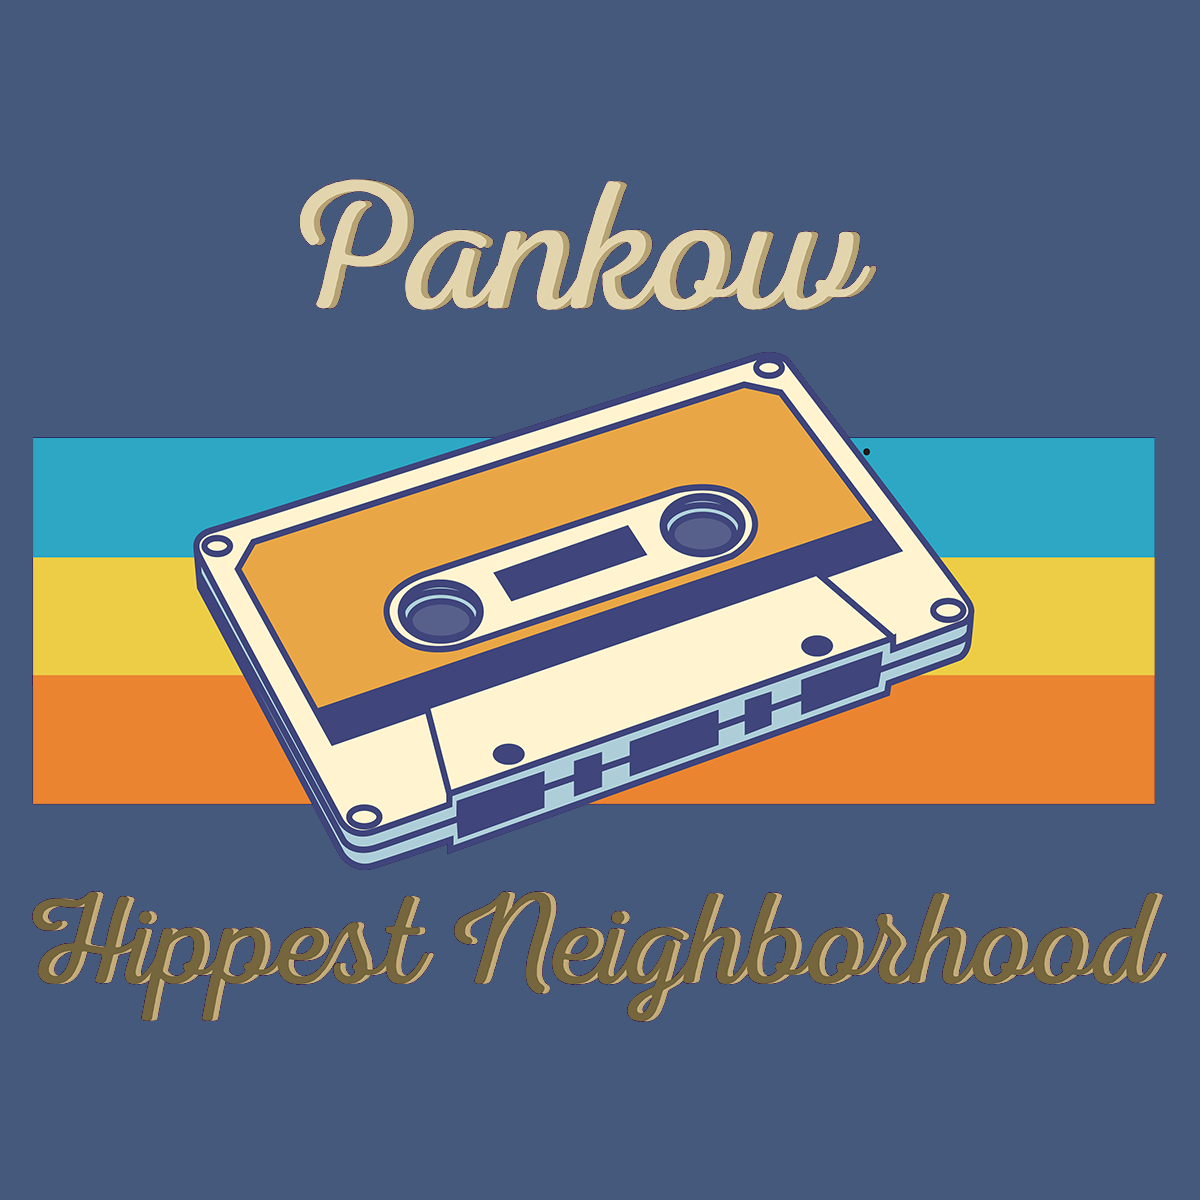 Pankow Hippest Neighborhood